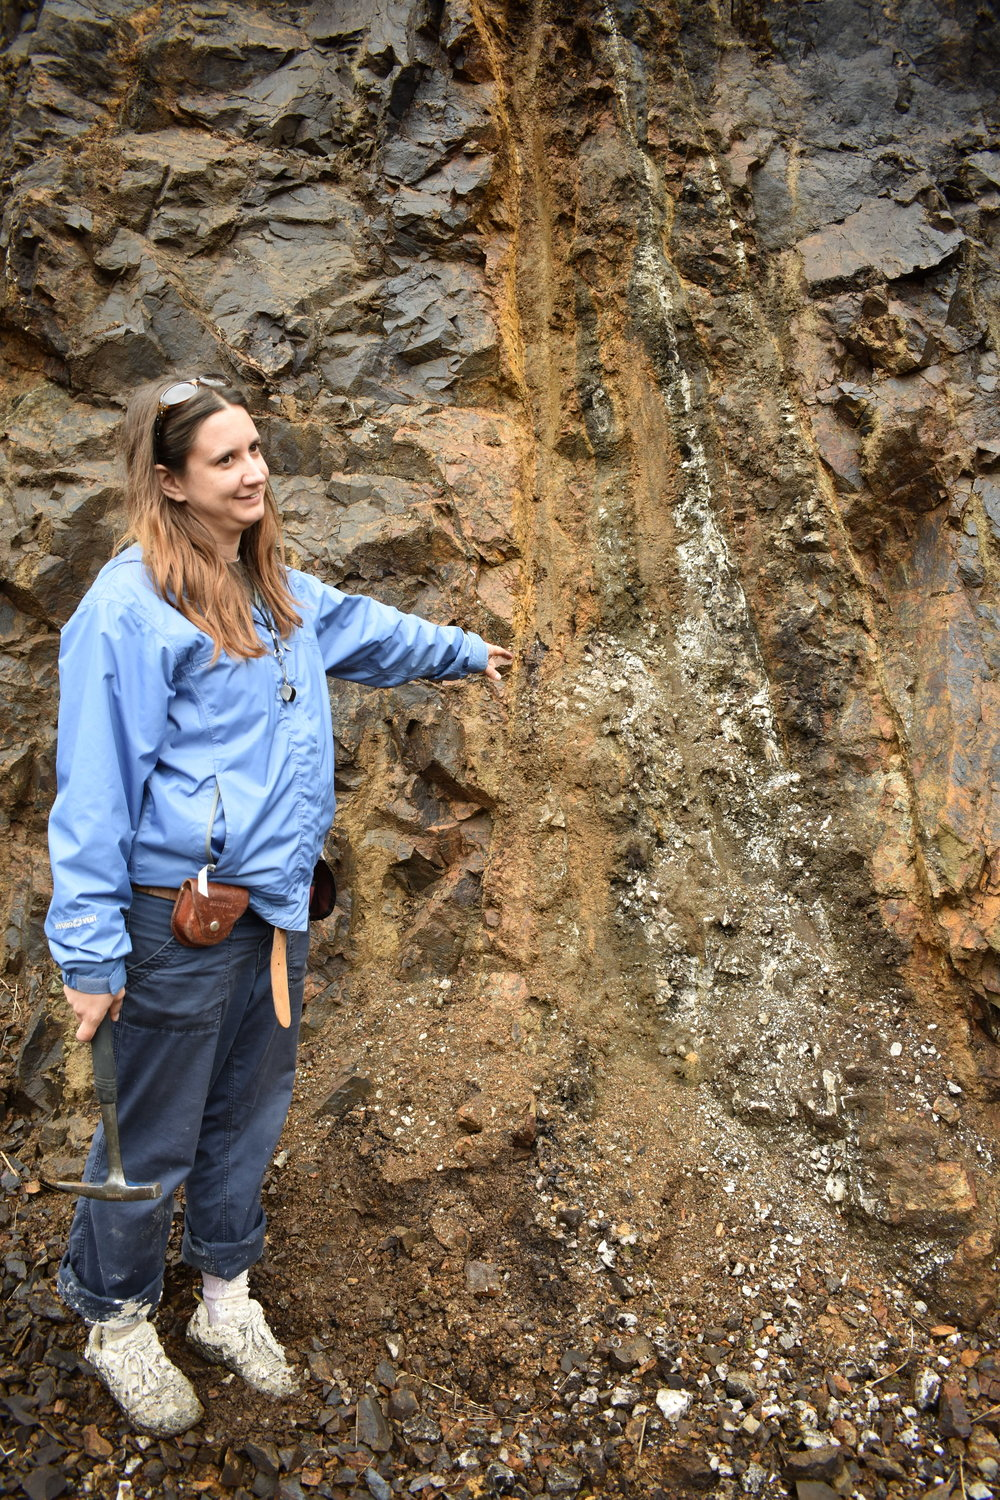 Dr. Amy Luther points to a fault damage zone with clay-like material on the left and veins of quartz. Photo Credit: Nicki Button